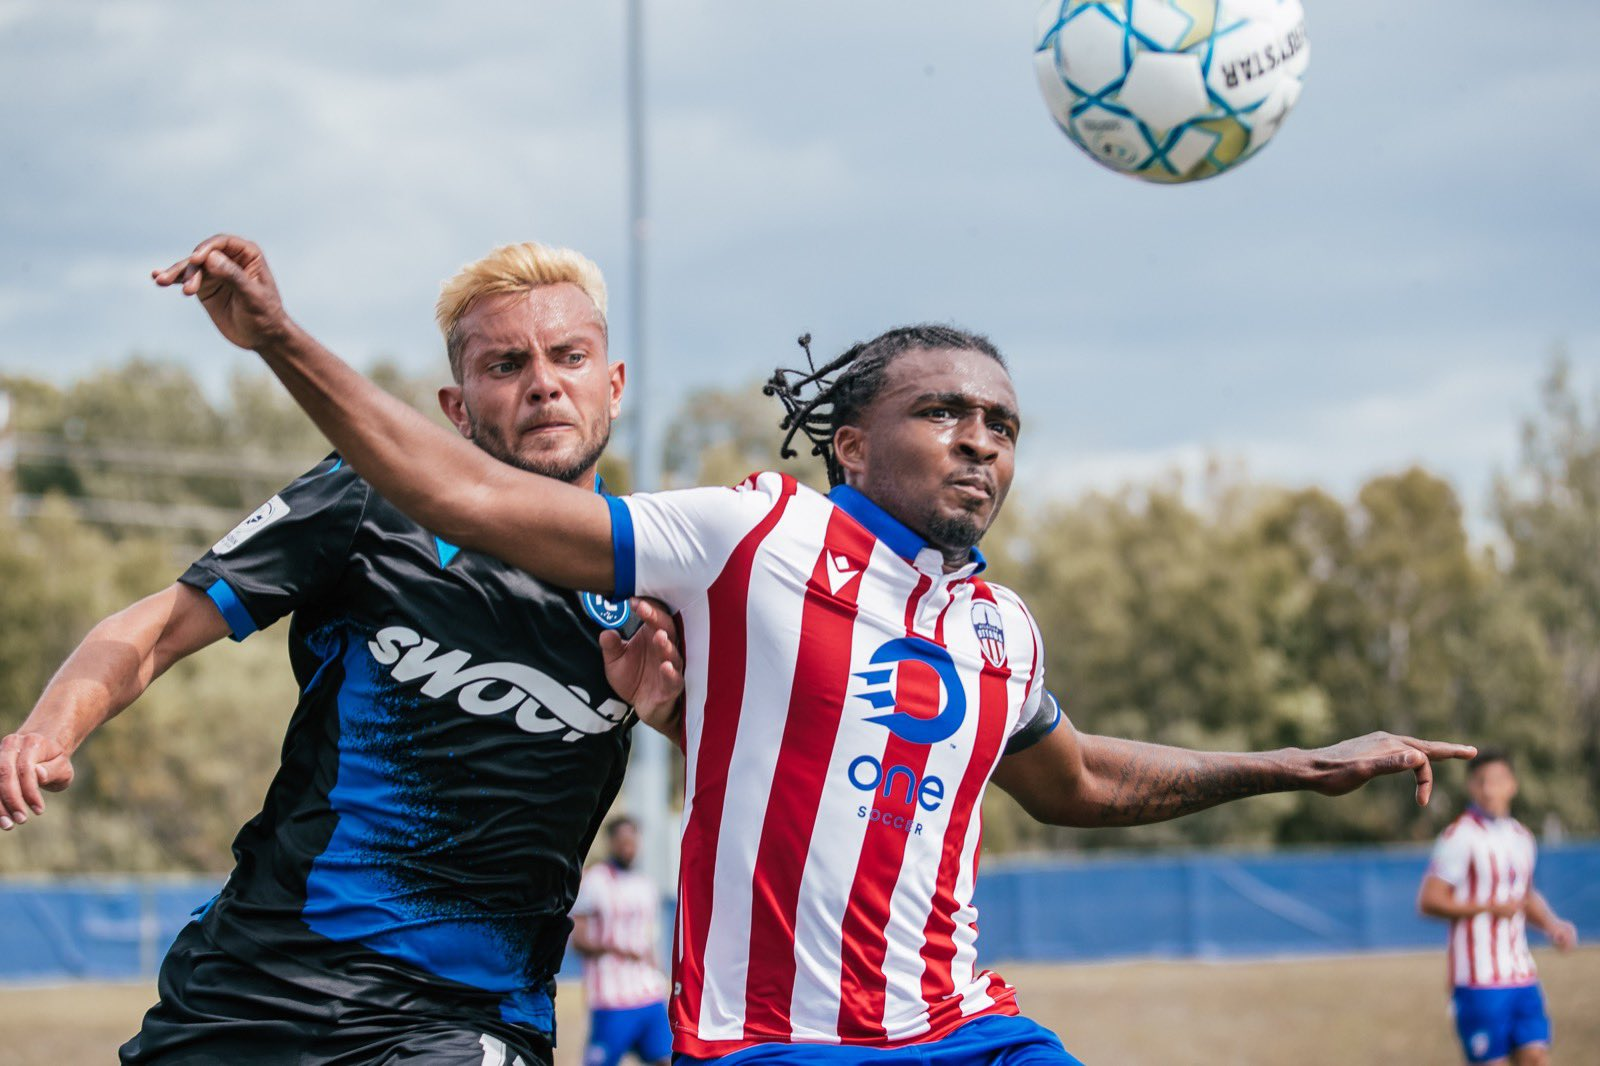 FC Edmonton's Keven Aleman fights for possession with Atlético Ottawa's Vashon Nueville. (Nora Stankovic/OneSoccer)